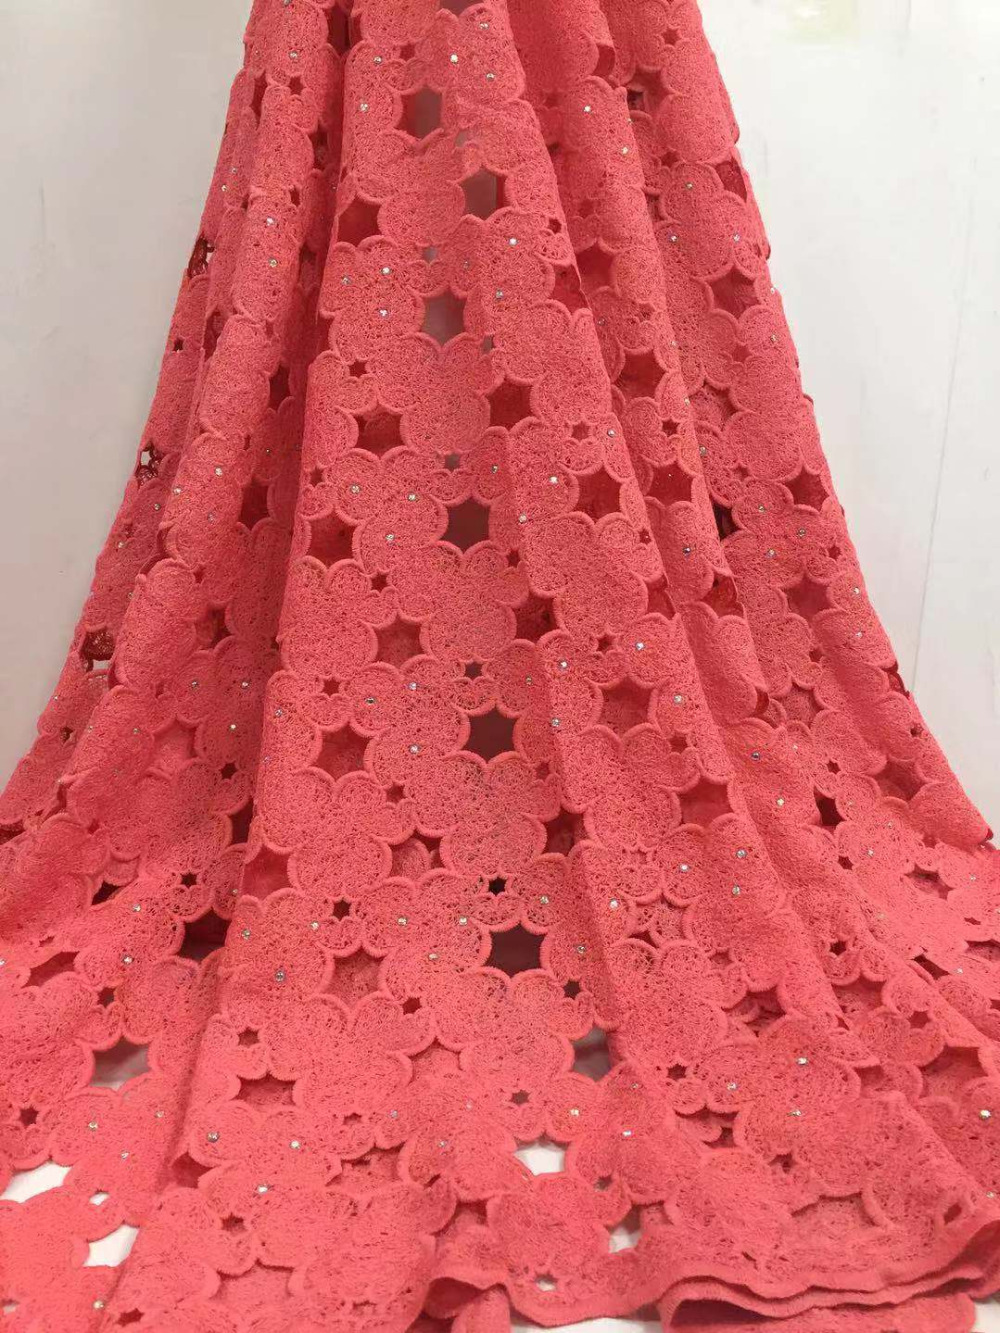 5yards/lot High quality nigerian wedding african lace fabrics/most popular guipure cord lace fabric for wedding dress FC17 TEC-in Lace from Home & Garden    1